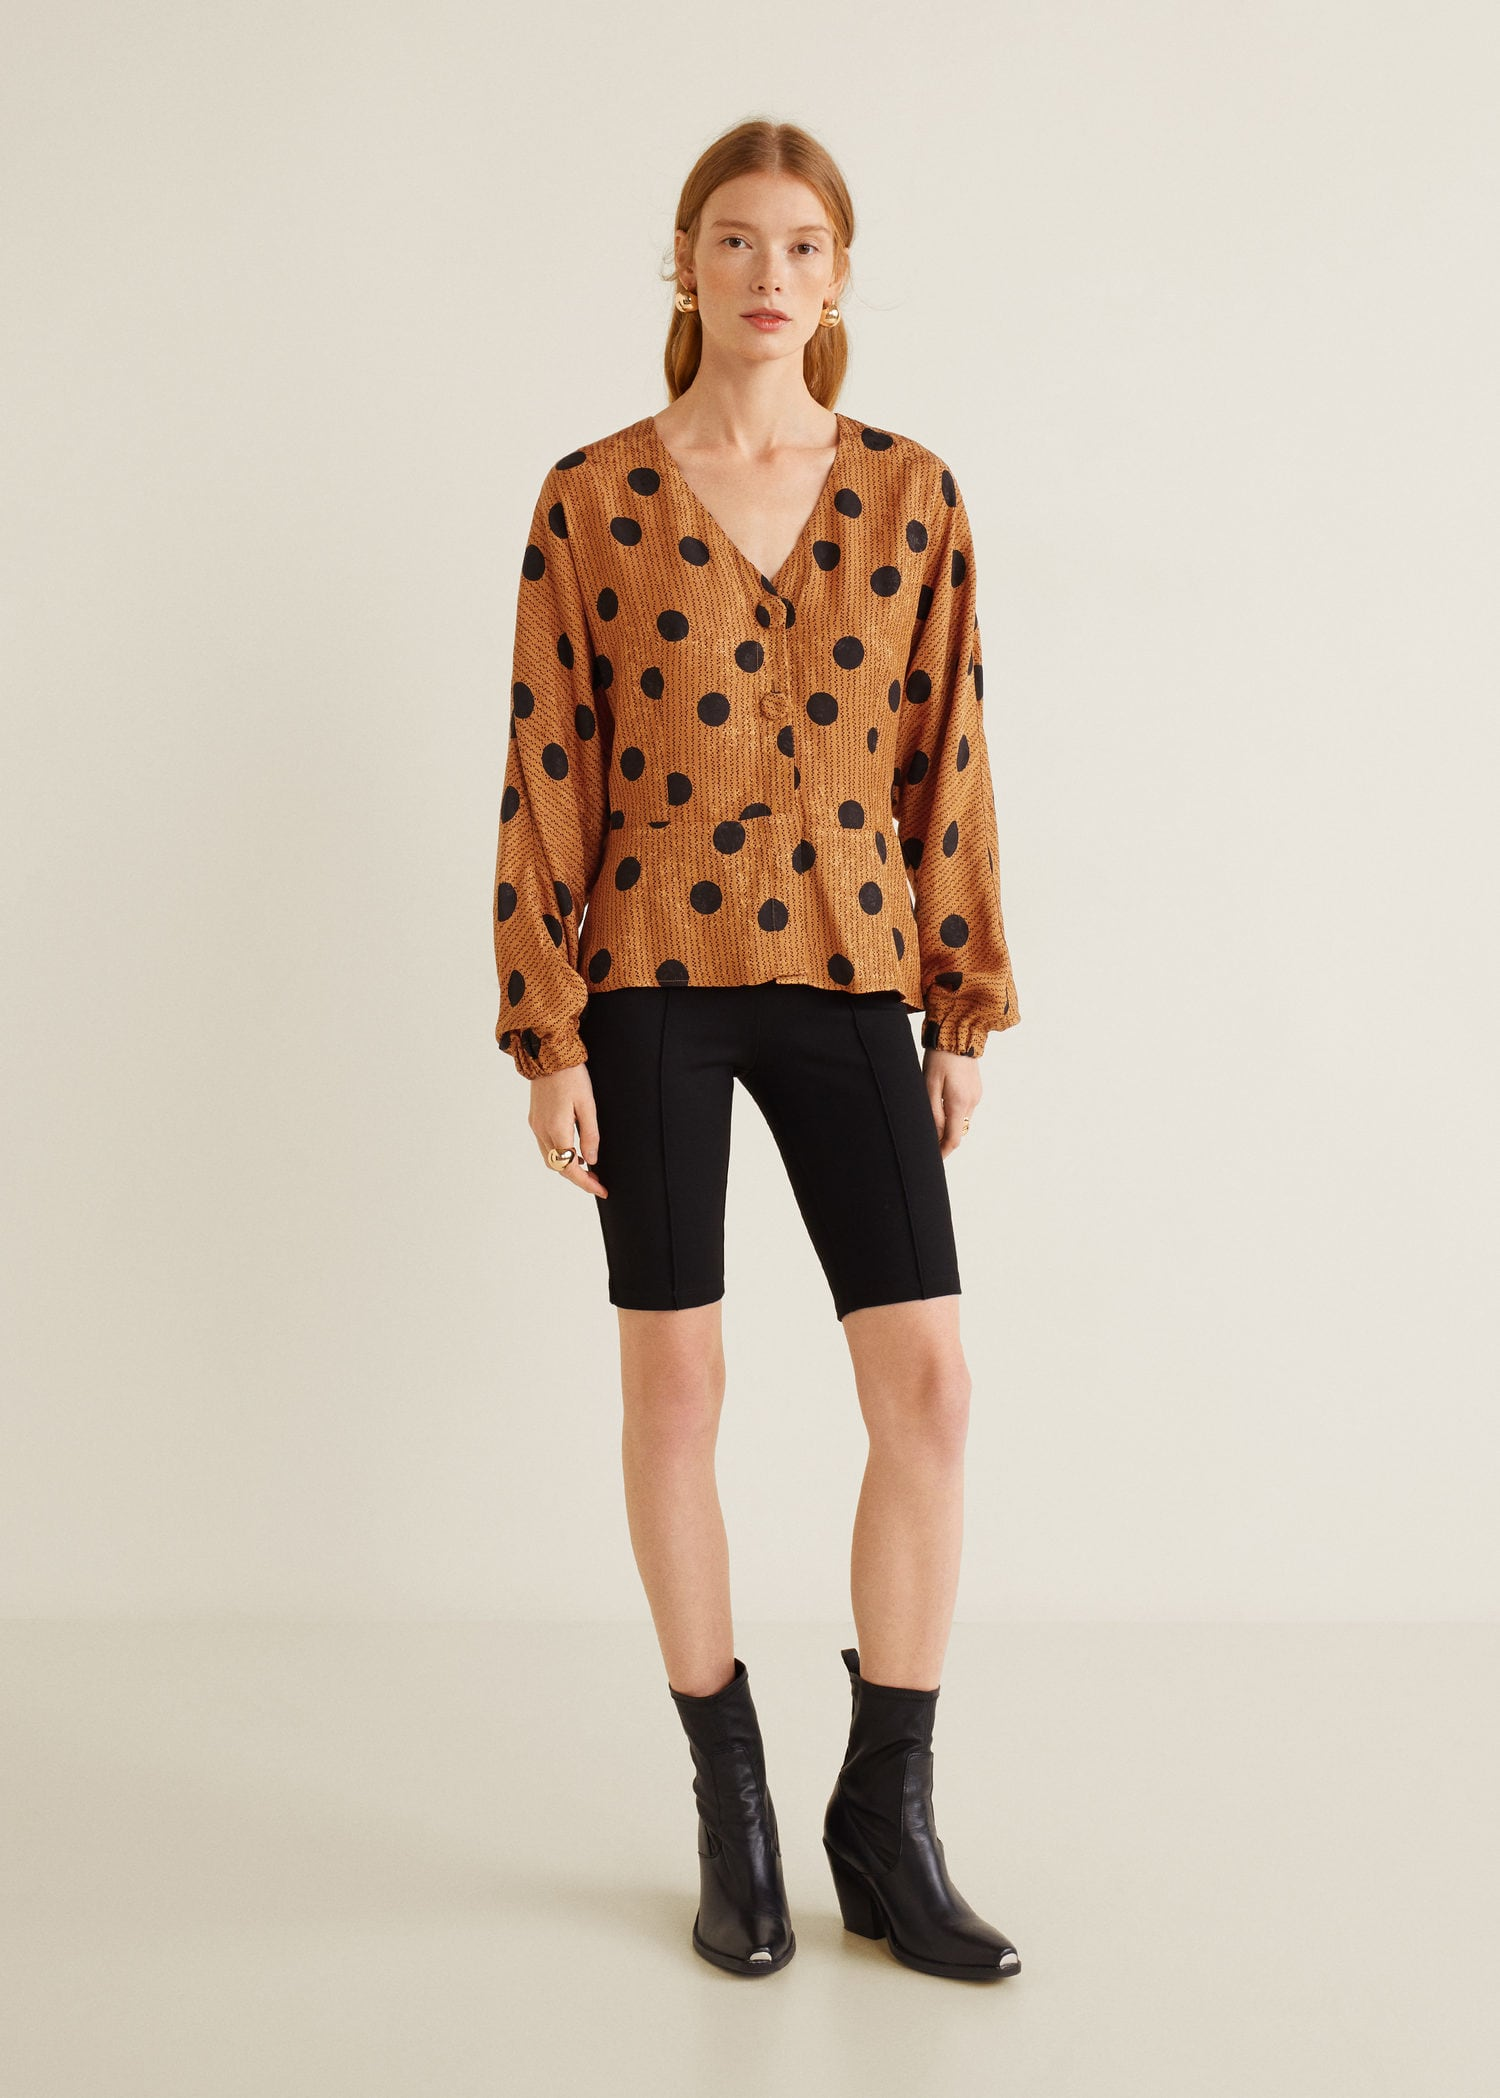 Polka Dot Print Blouse Puffed Sleeves